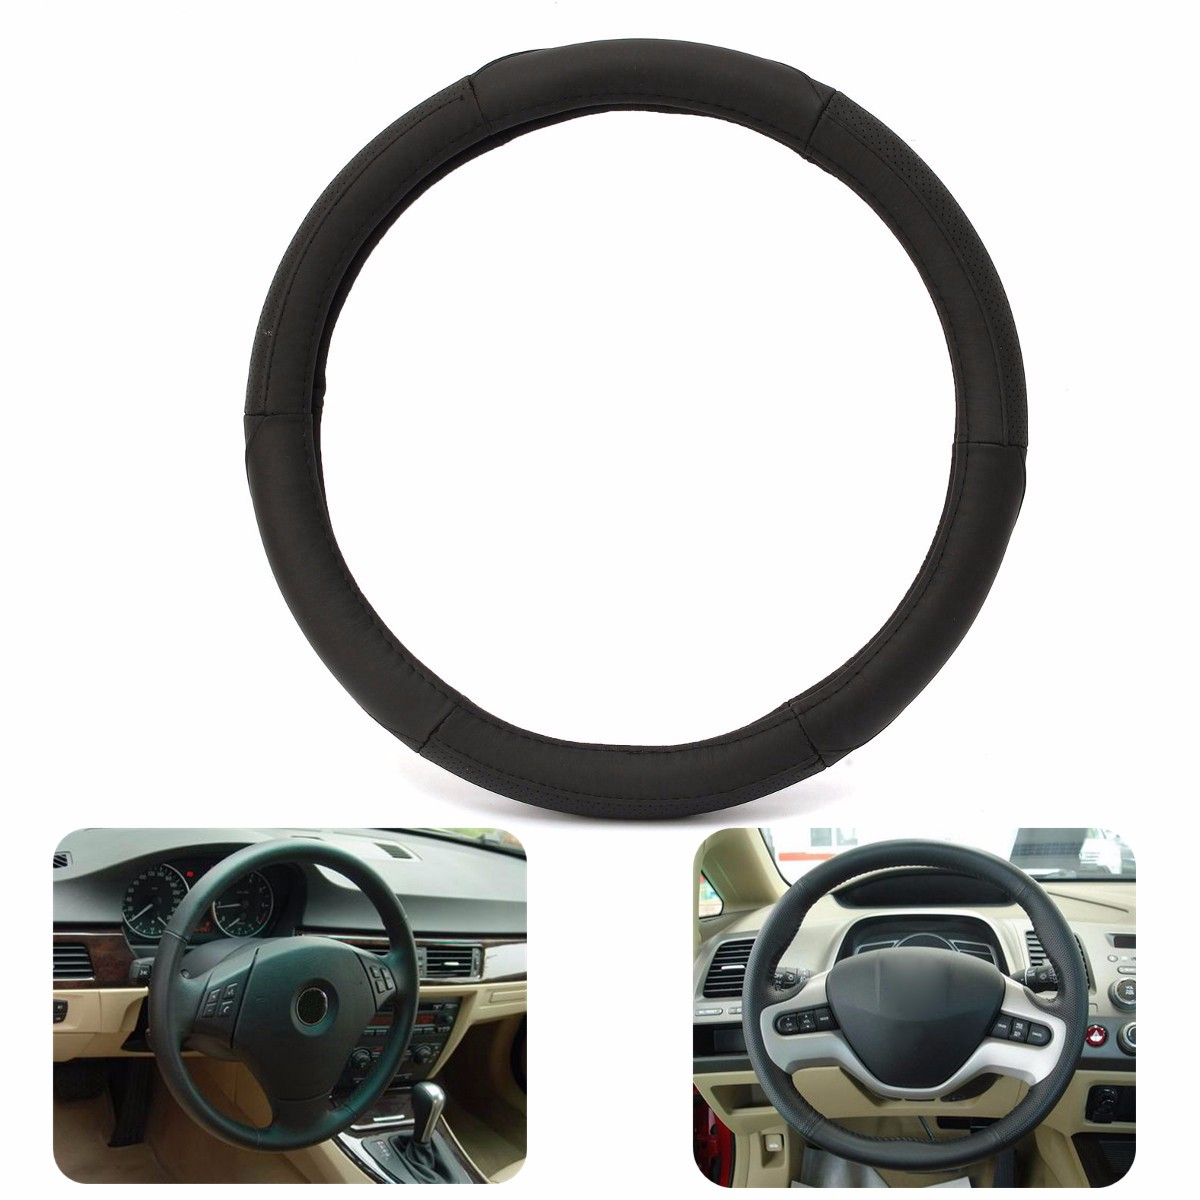 38cm Black Leather General Steel Ring Wheel Cover Medium For Volkswagen Honda